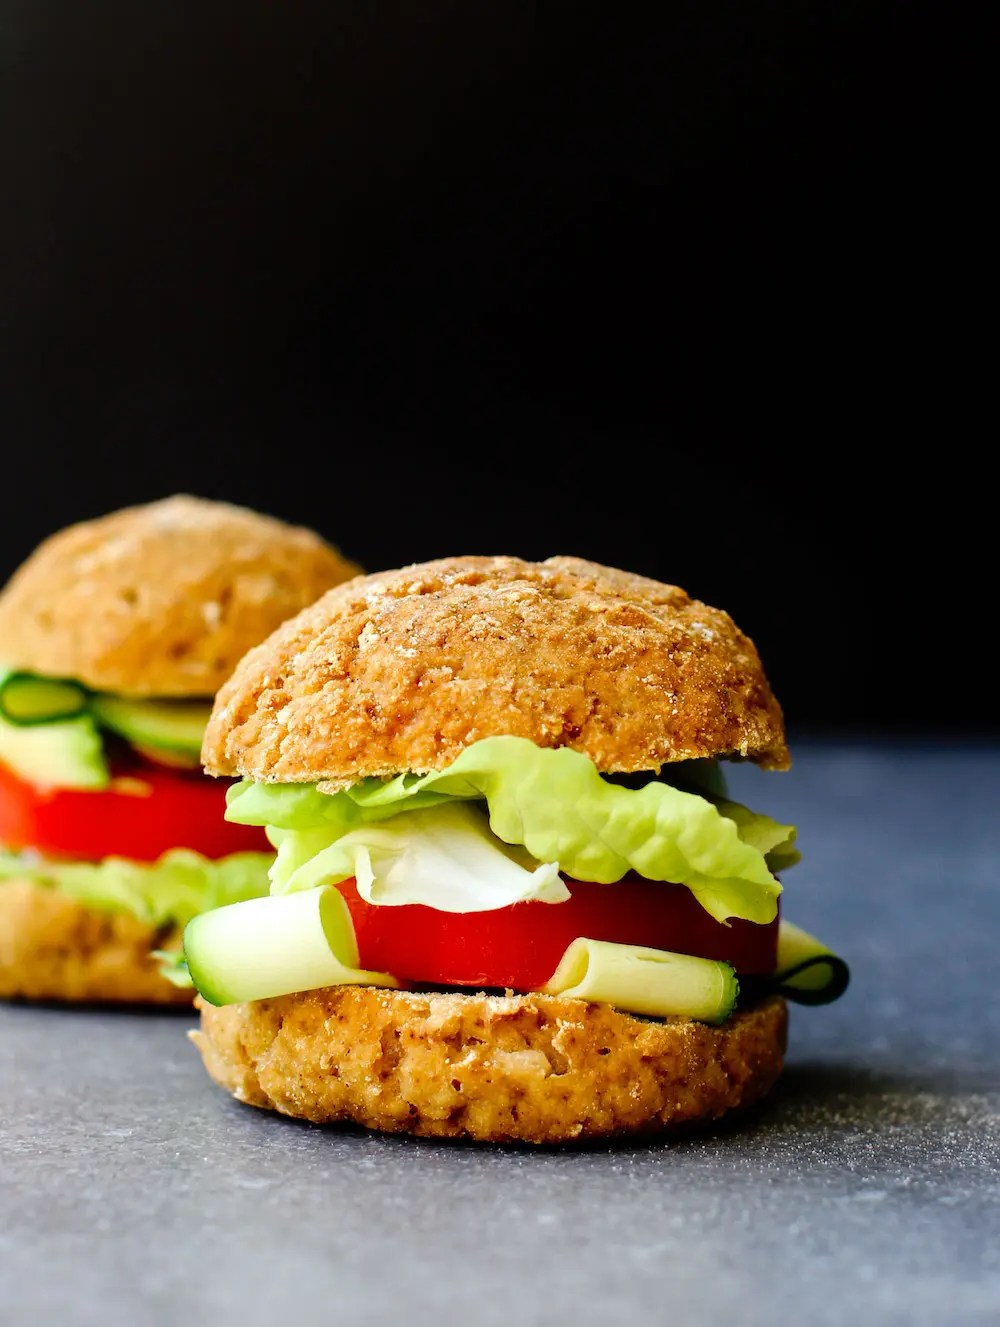 Vegan Gluten-Free Buns Recipe {oil-free}